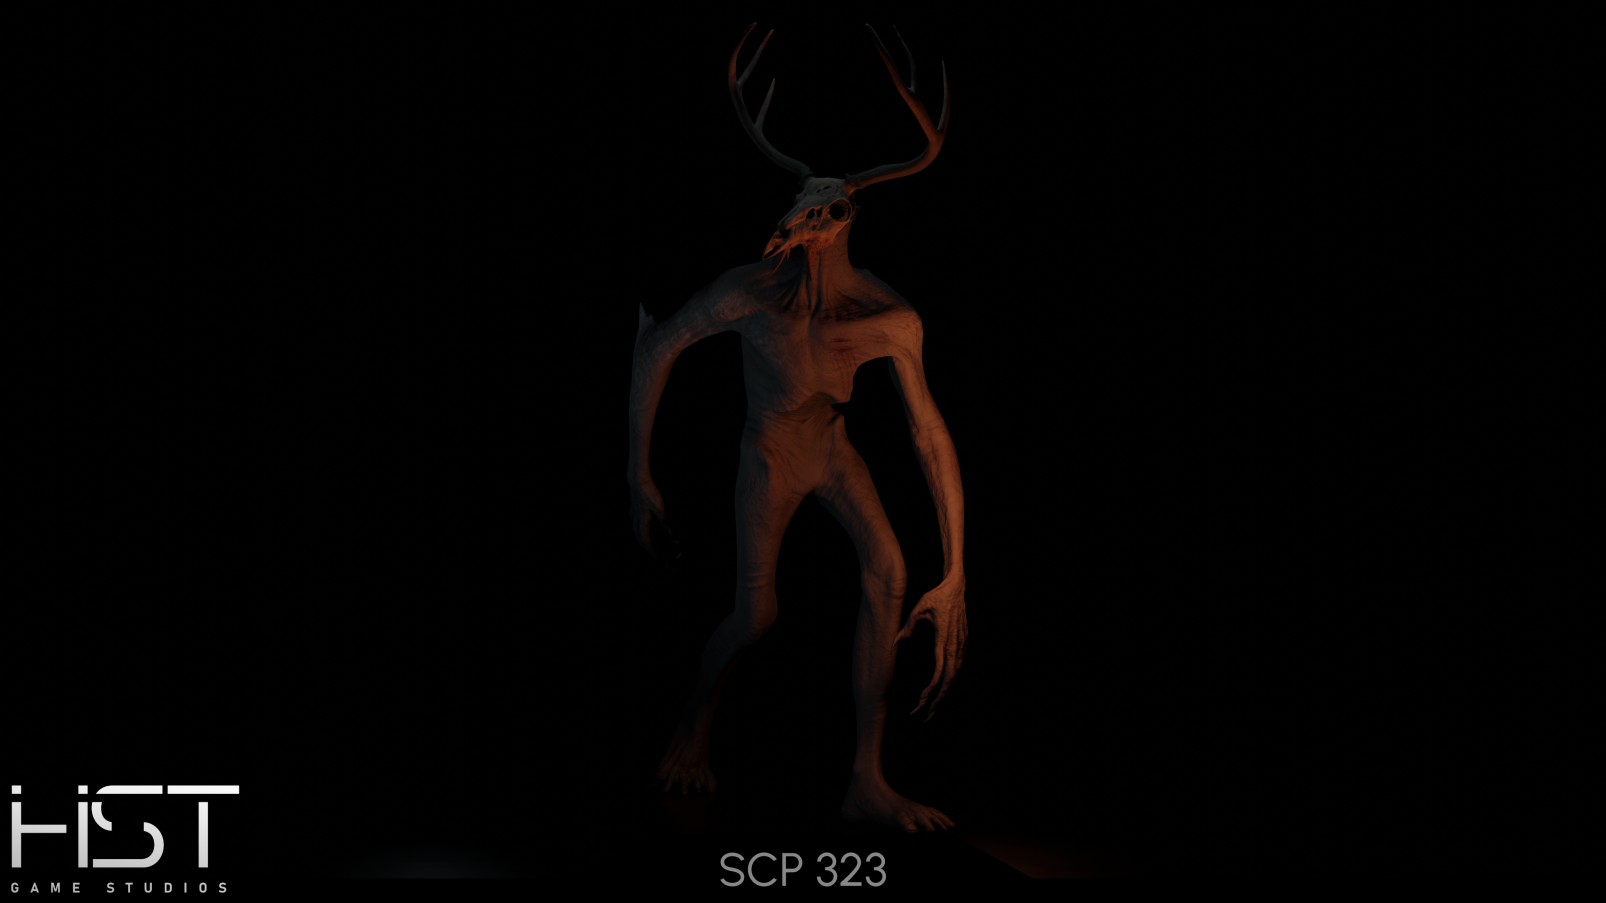 Scp 323